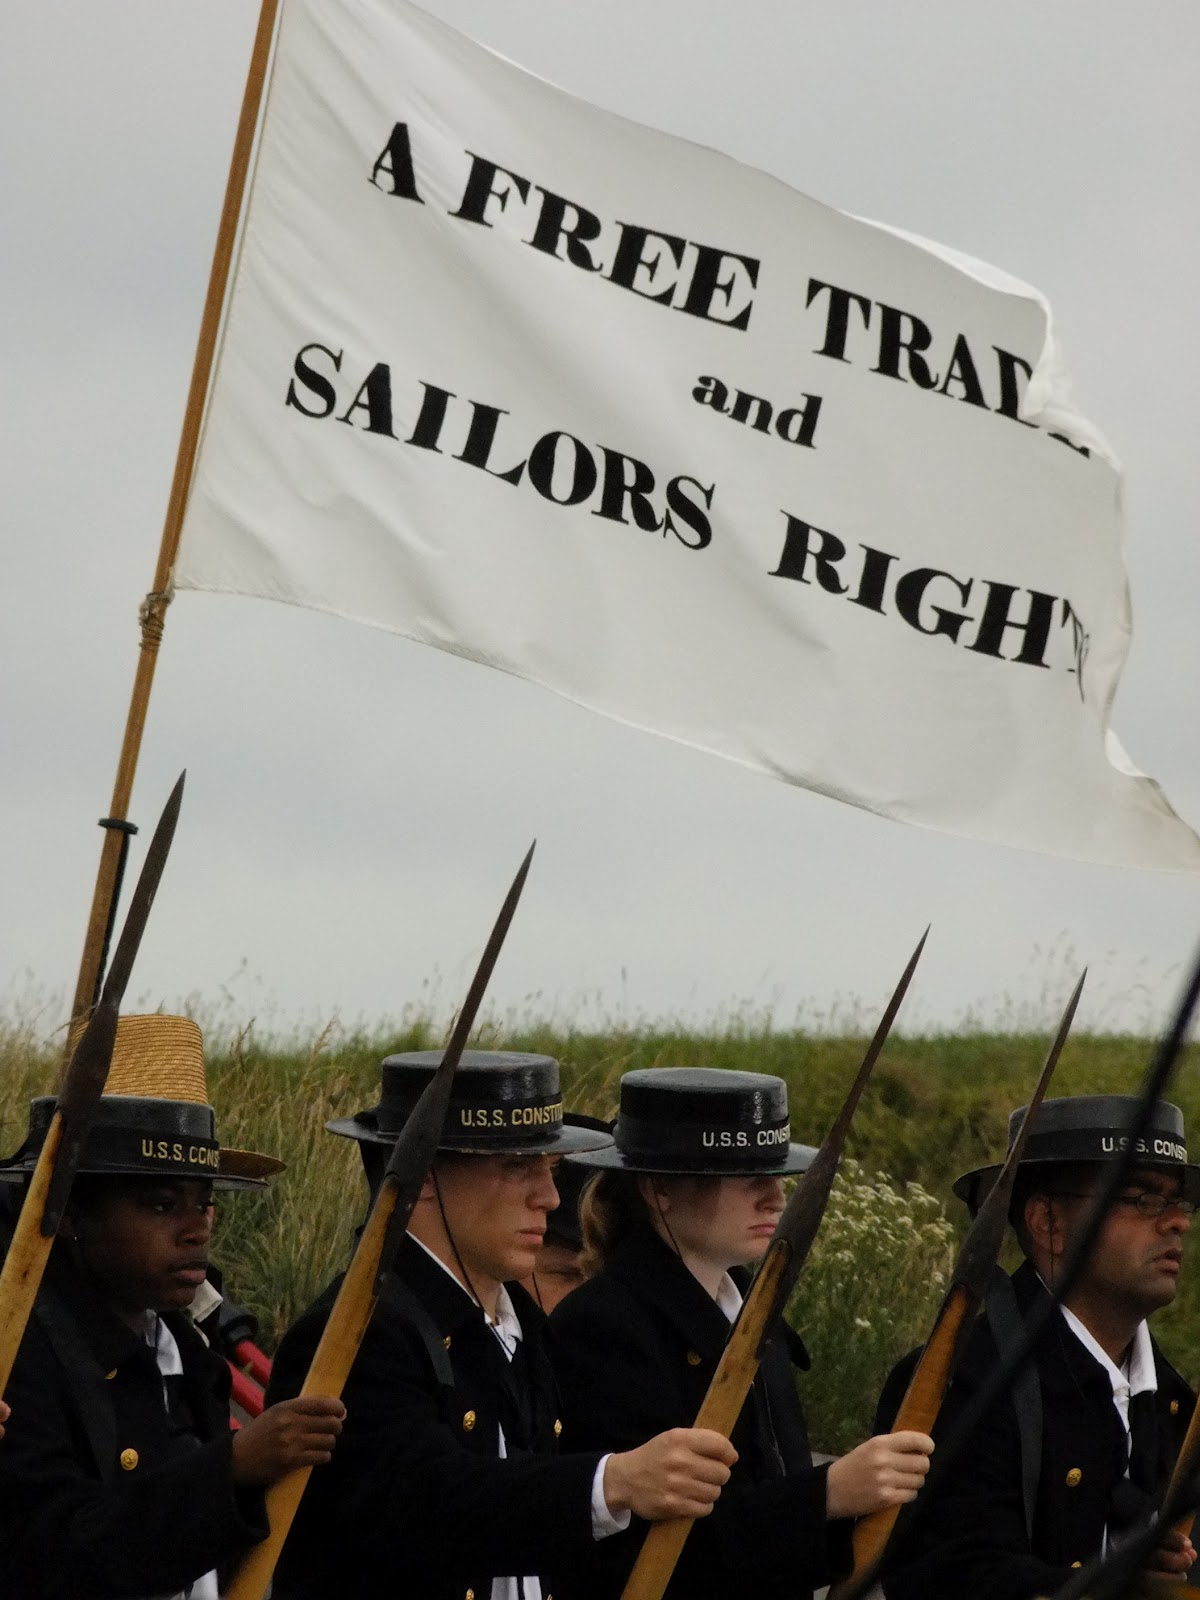 sailors+rights!.jpg